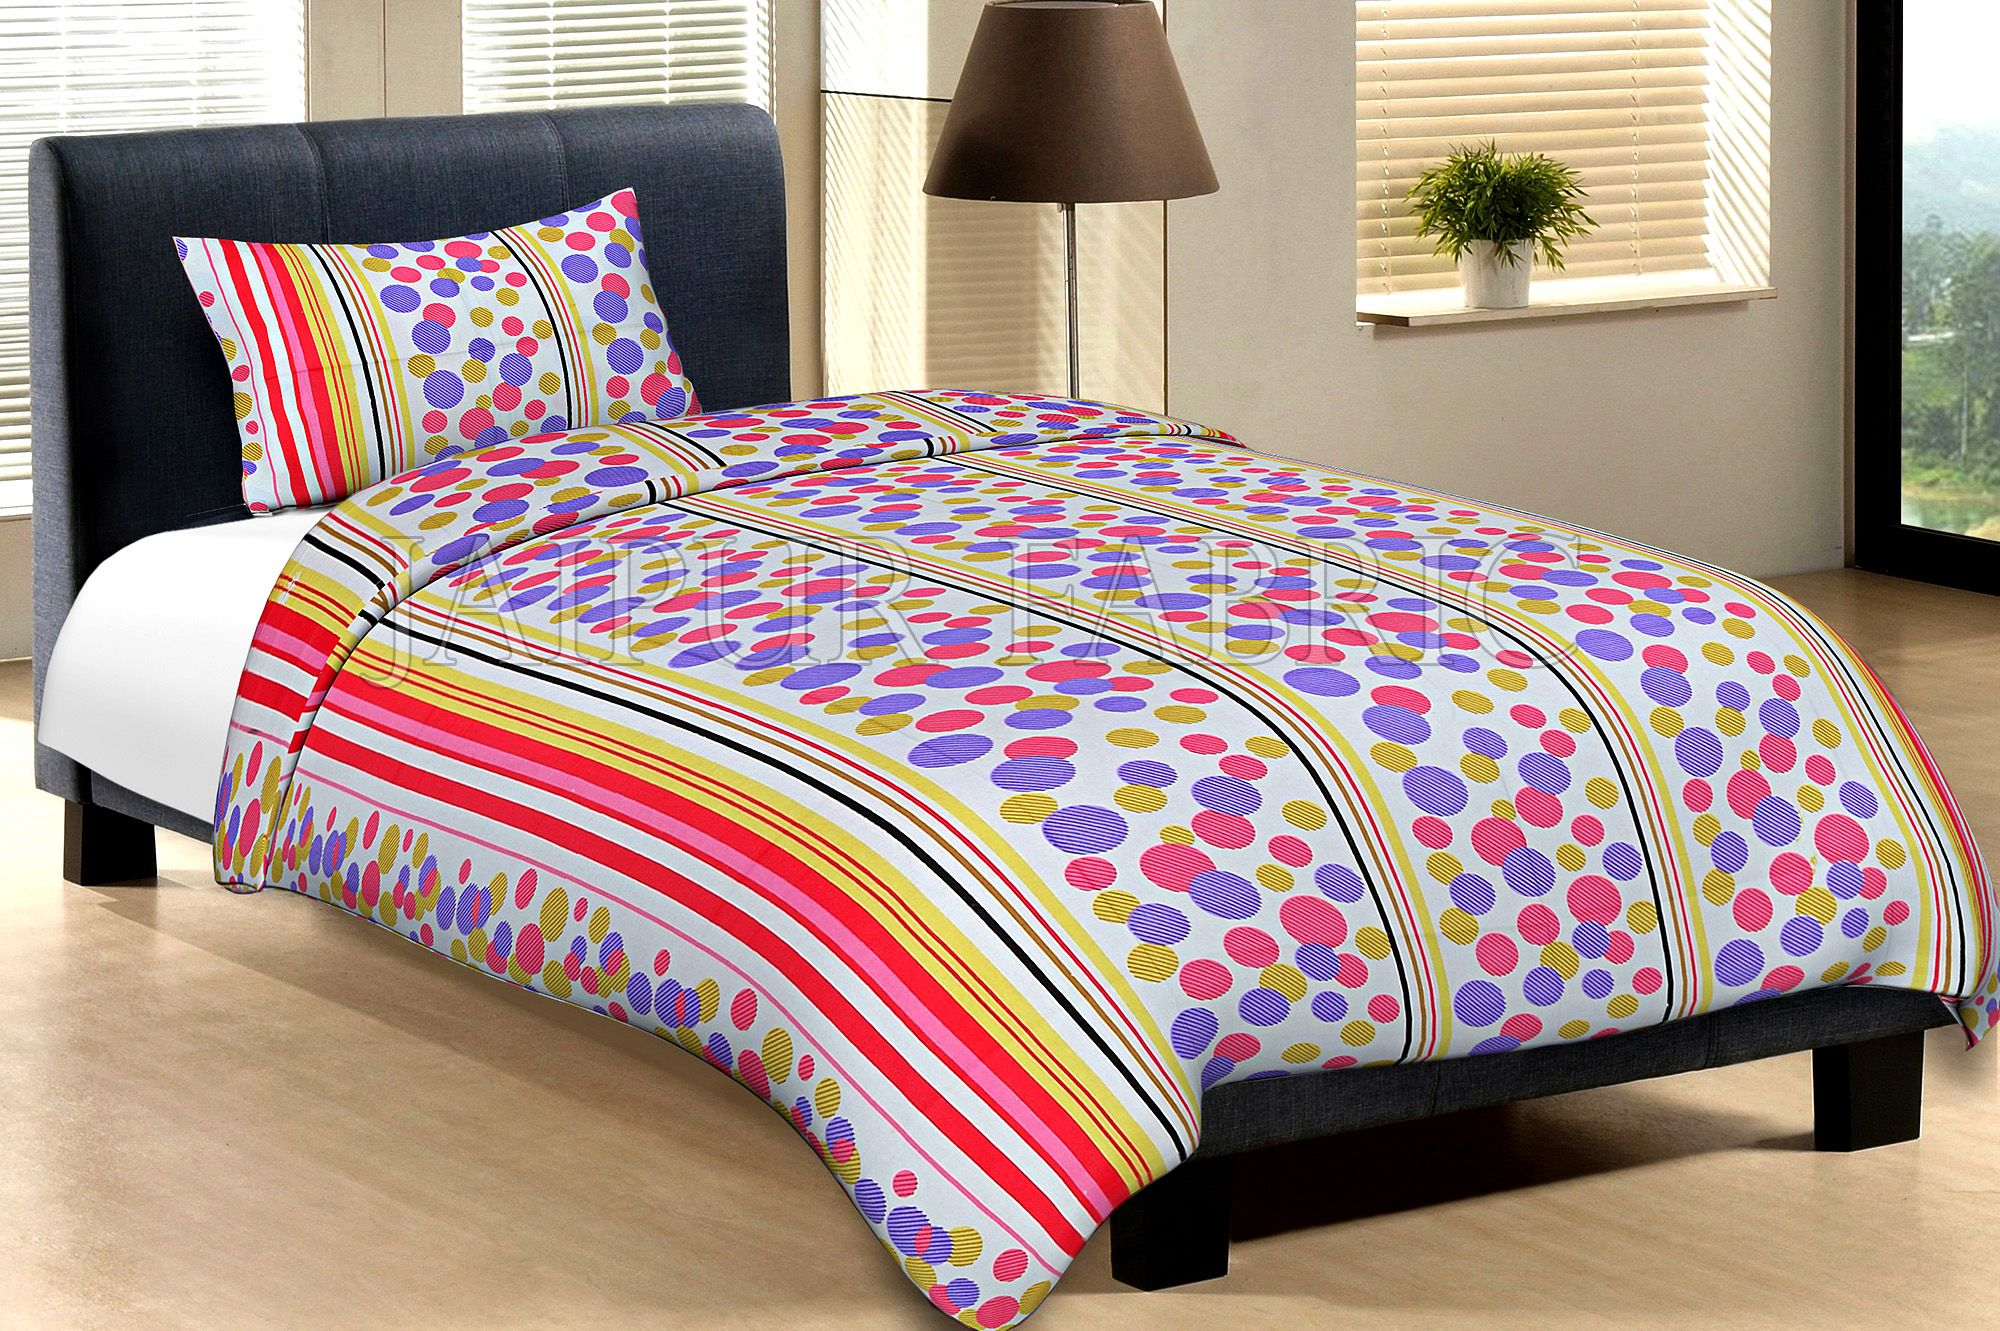 White Base Pink Purple And Yellow Polka Dot And Lining Print Cotton Single Bed Sheet without pillow Cover